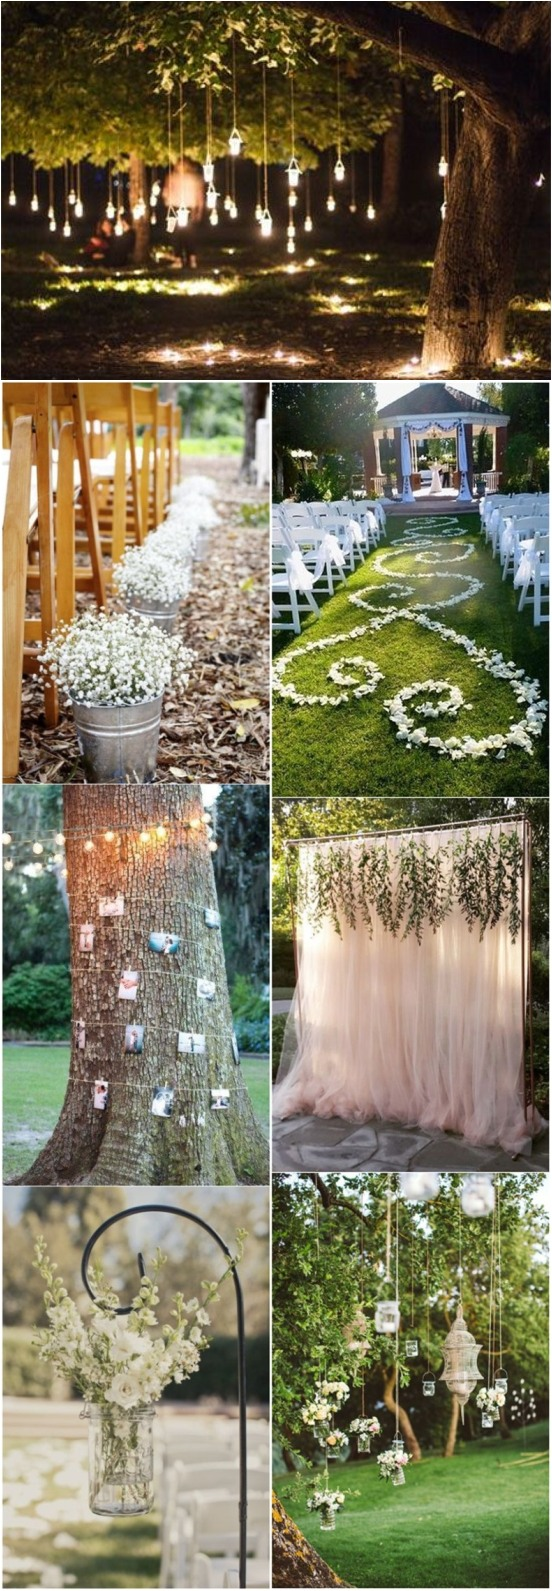 20 genius outdoor wedding ideas outdoor wedding decorations ideas junglespirit